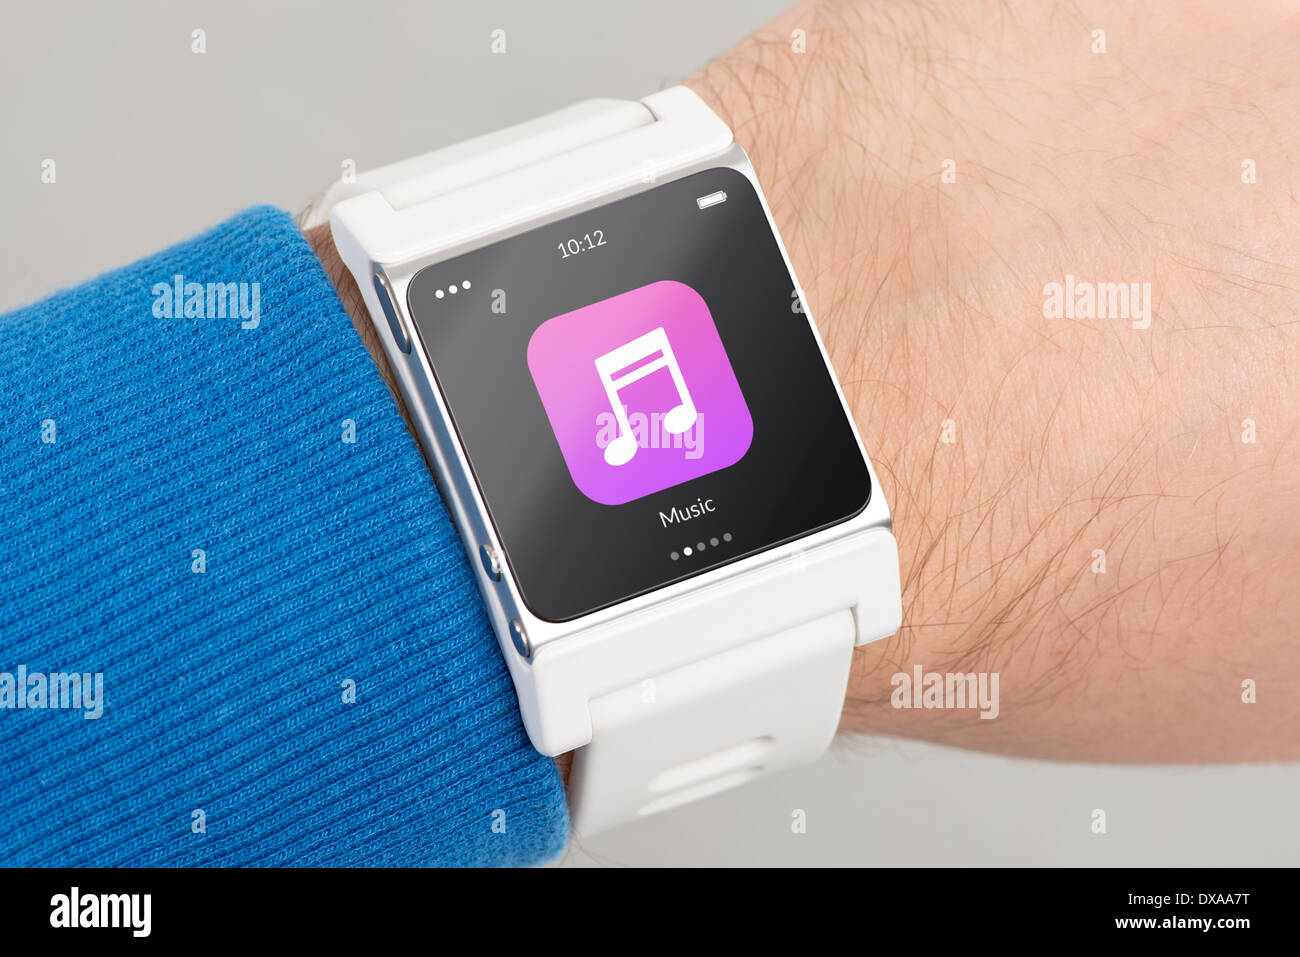 Close up white smart watch with music app icon on the screen is on hand - Stock Image